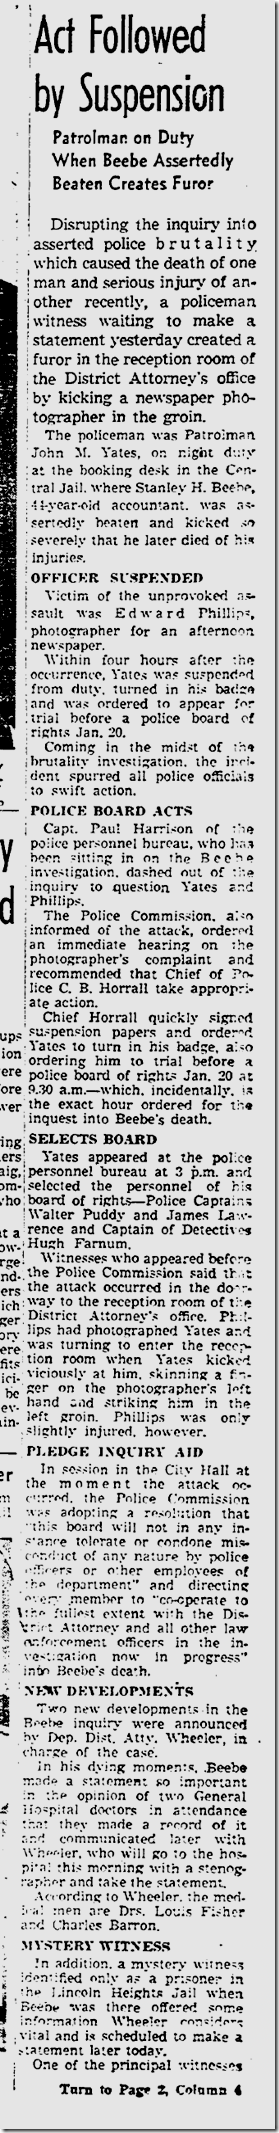 Jan. 13, 1943, Beebe Inquest